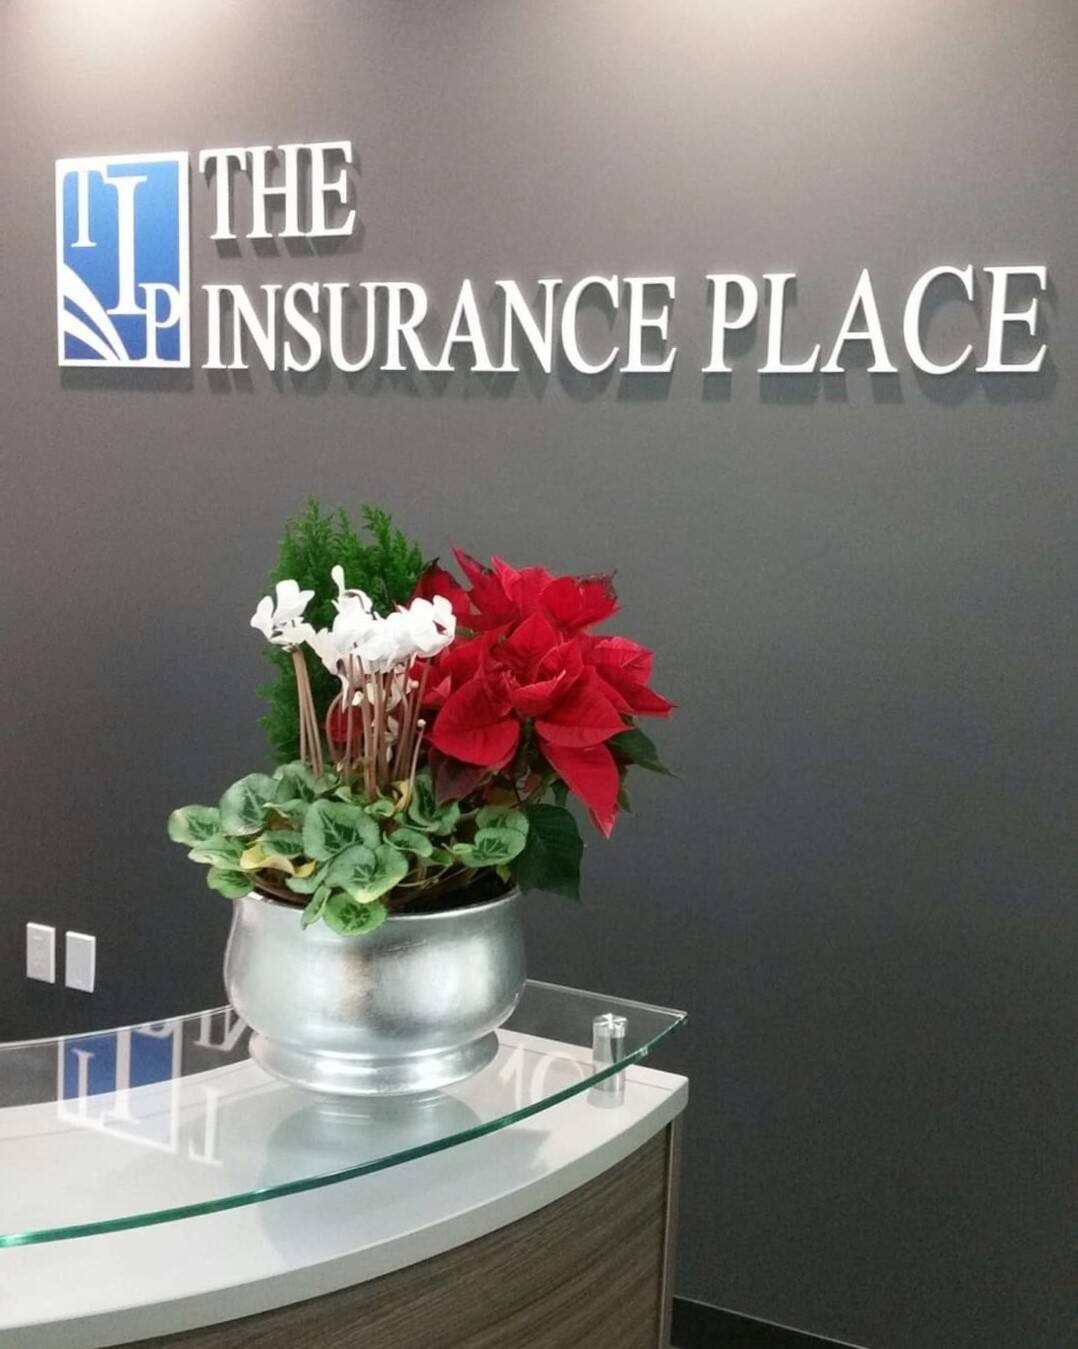 The Insurance Place Office